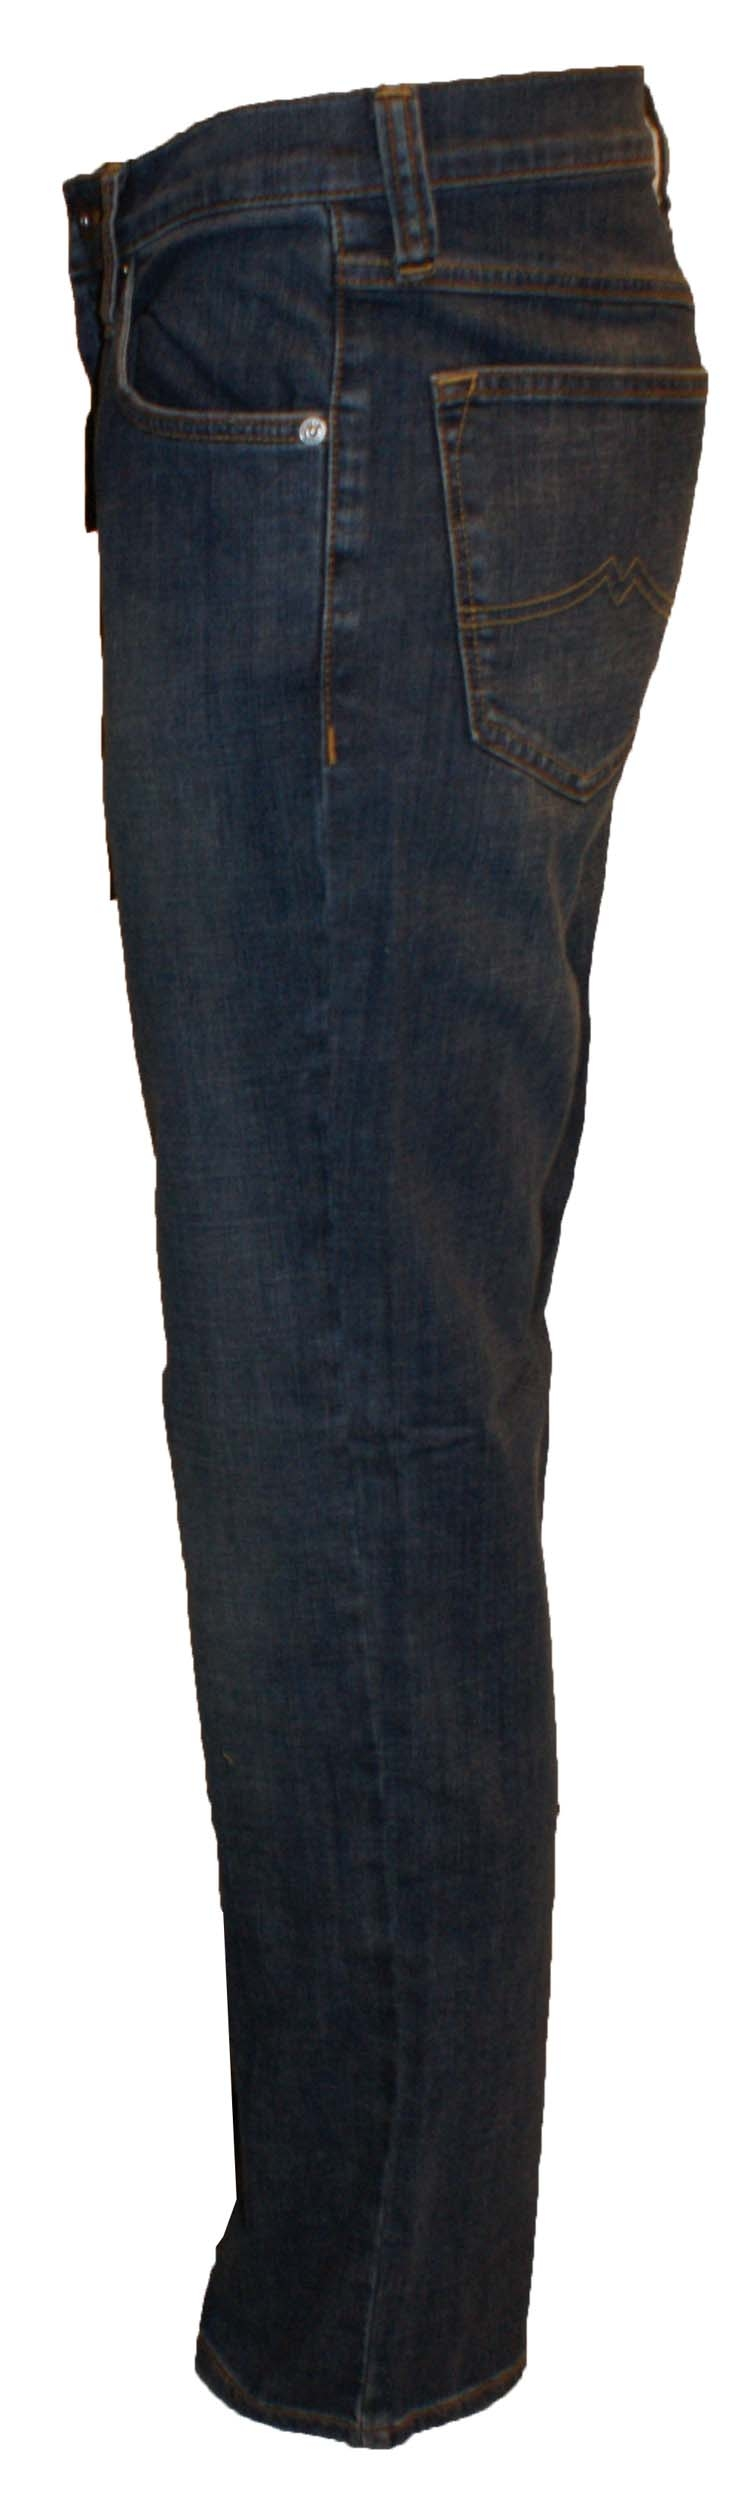 "Mustang stretch jeans  "" Bige sure ""  Dark used"